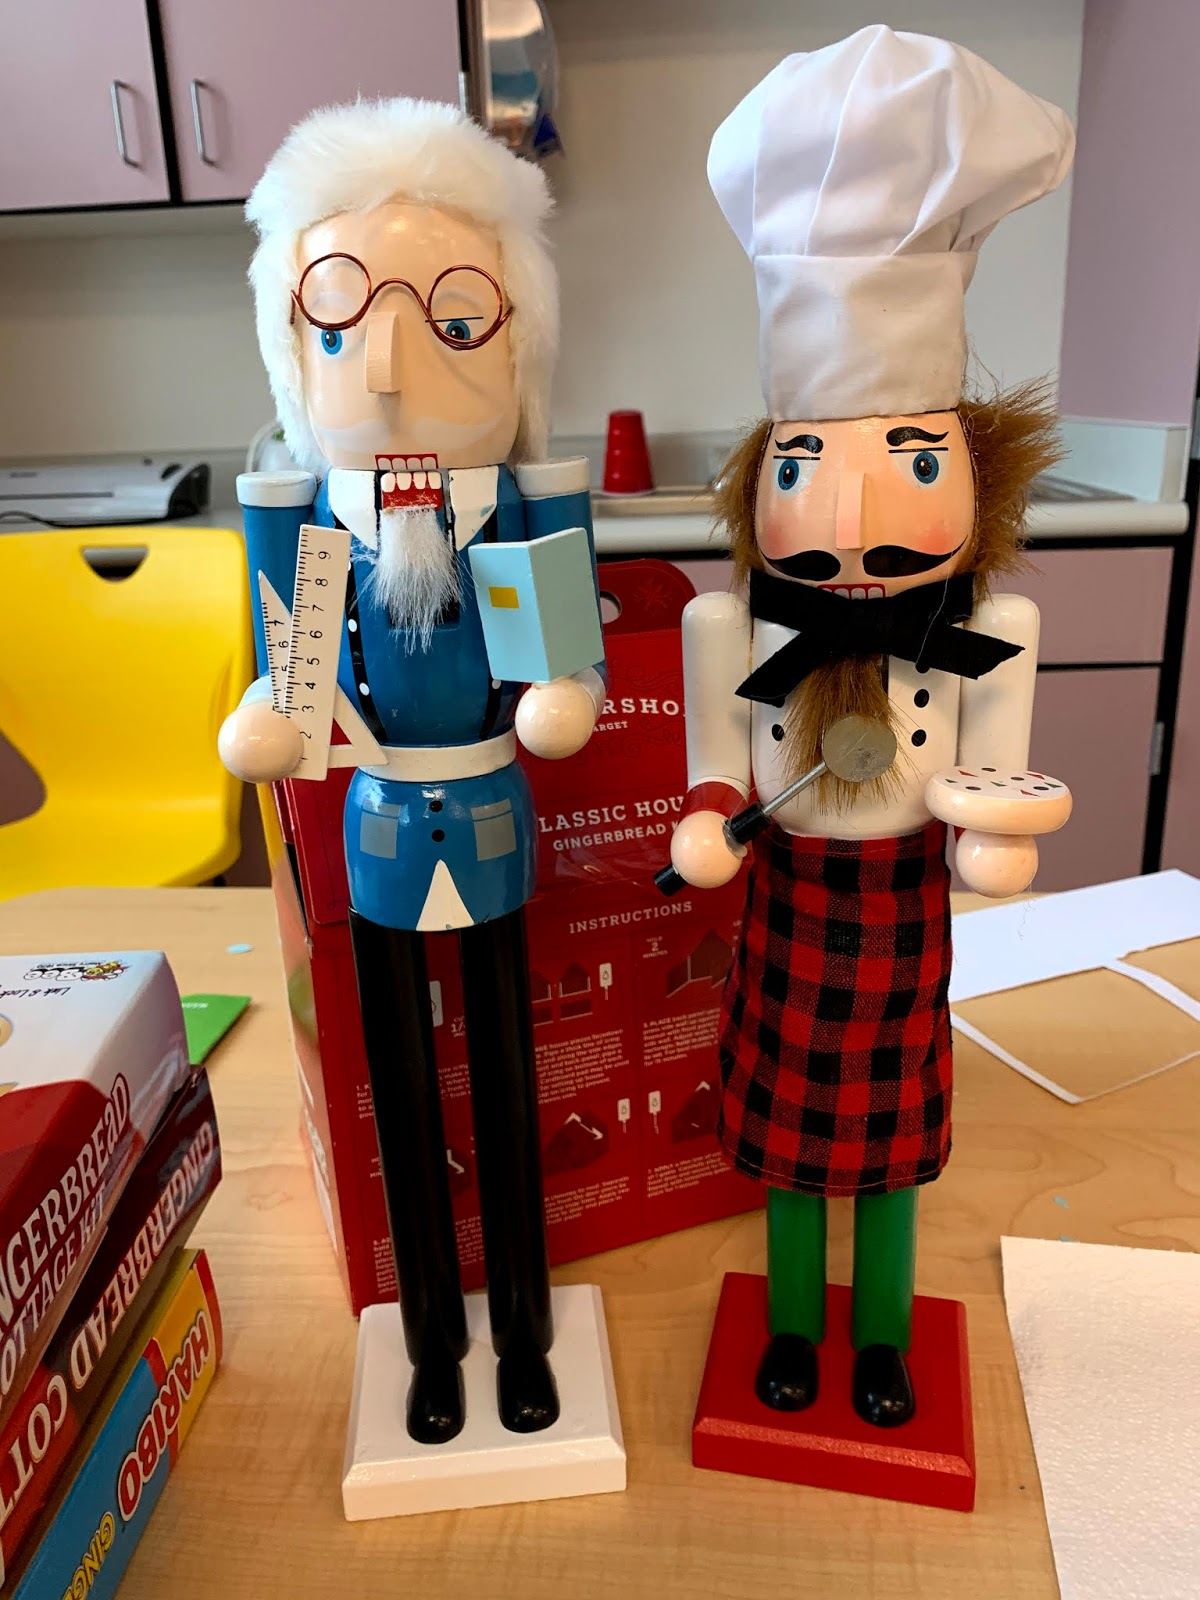 A professor and pizza chef Nutrcracker dolls